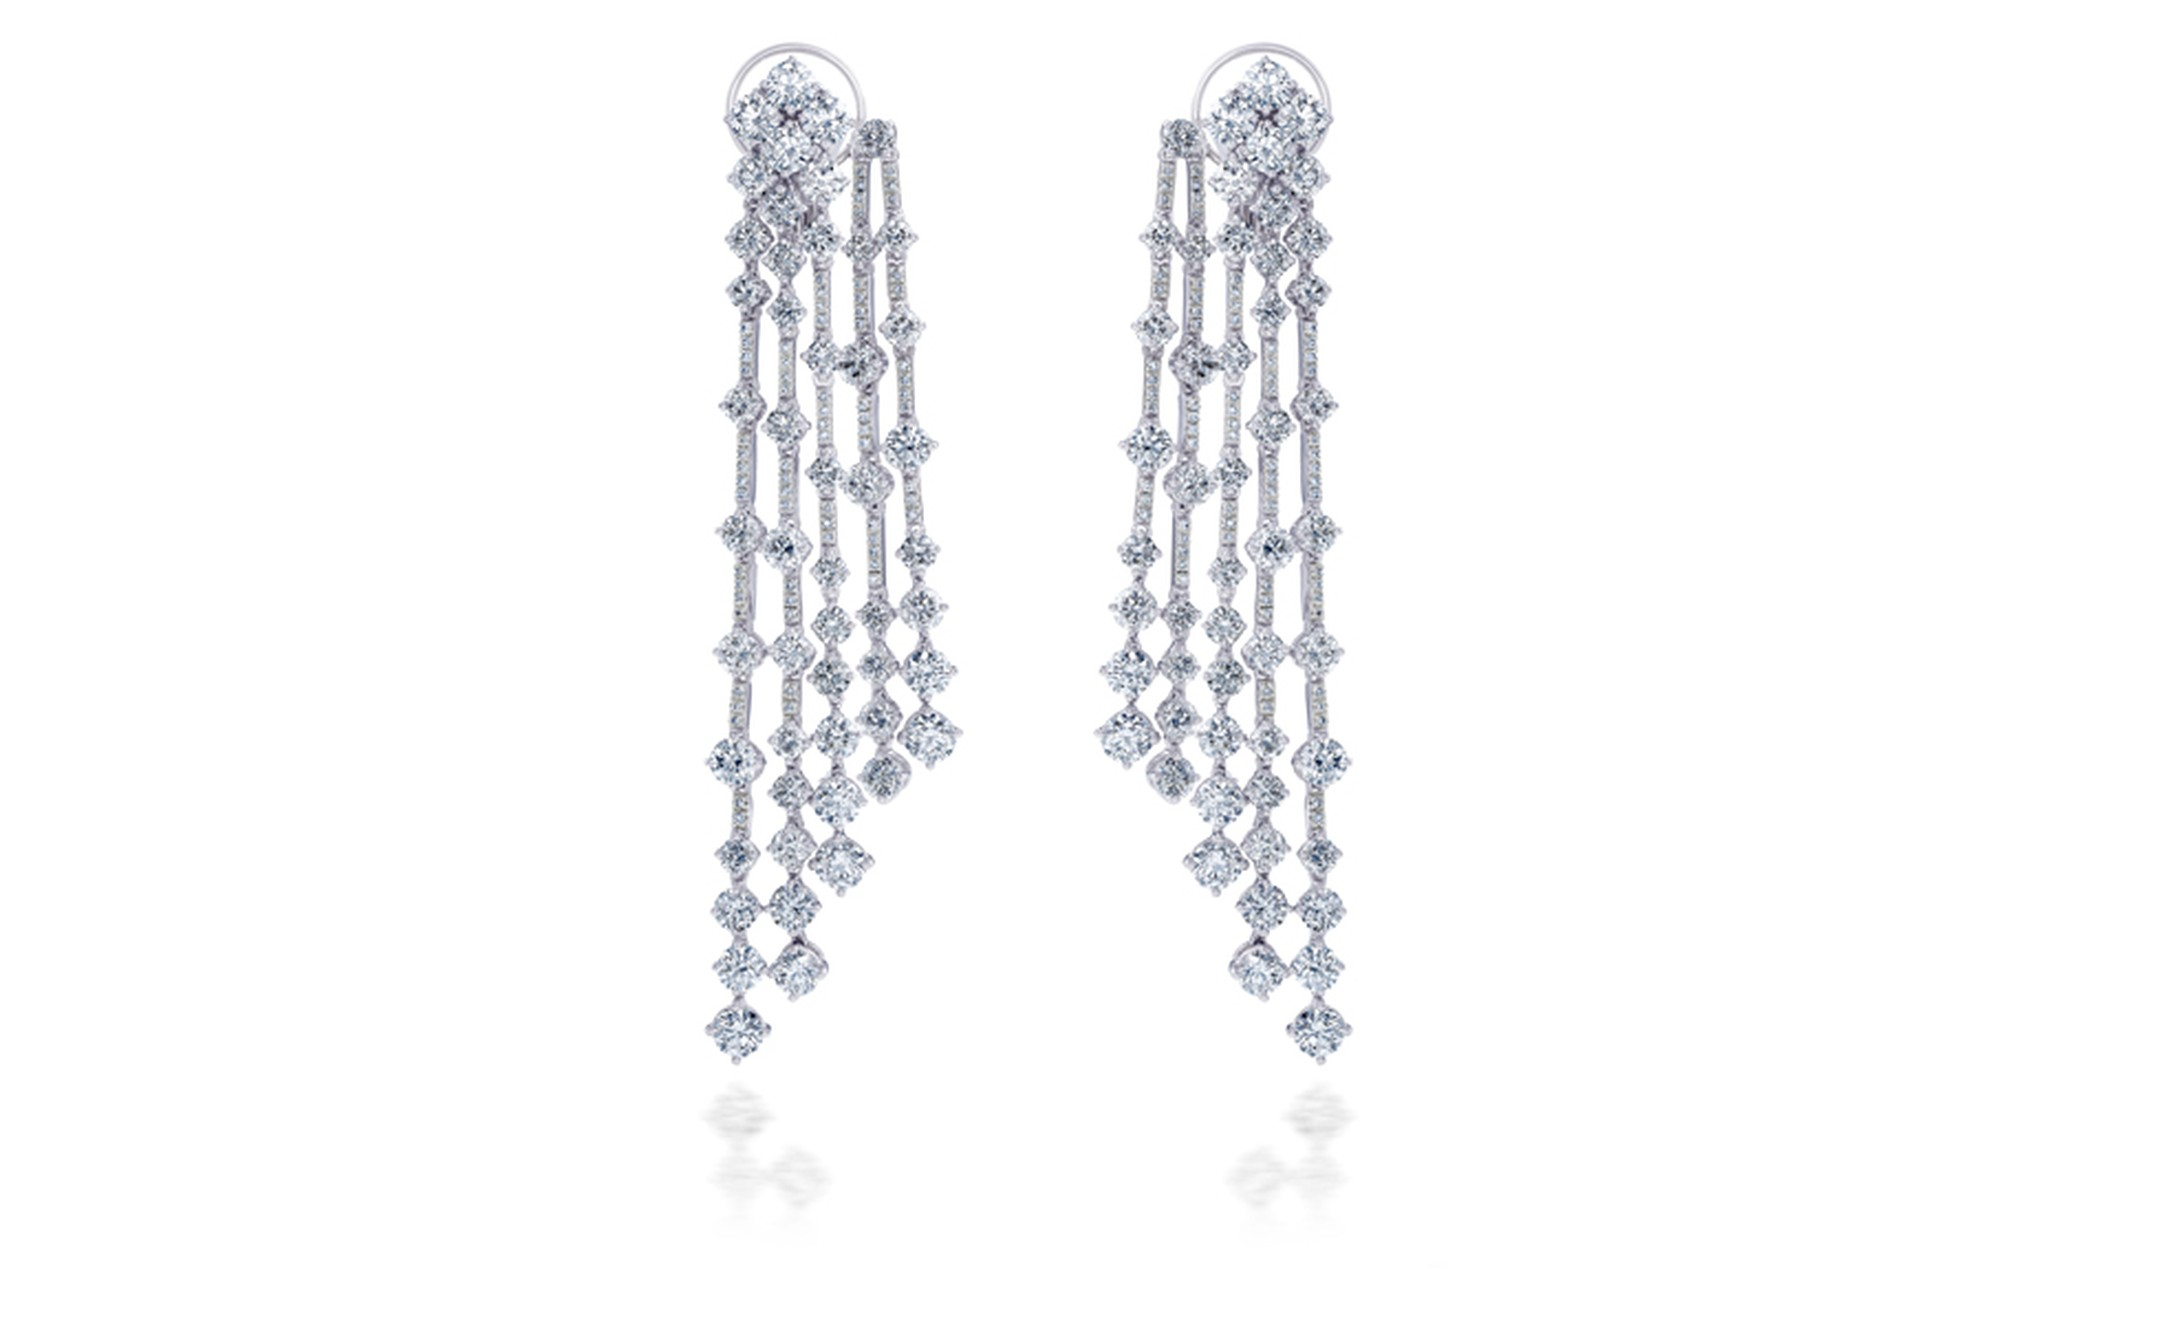 DE BEERS, Arpeggia collection, five-line earrings in white gold. POA